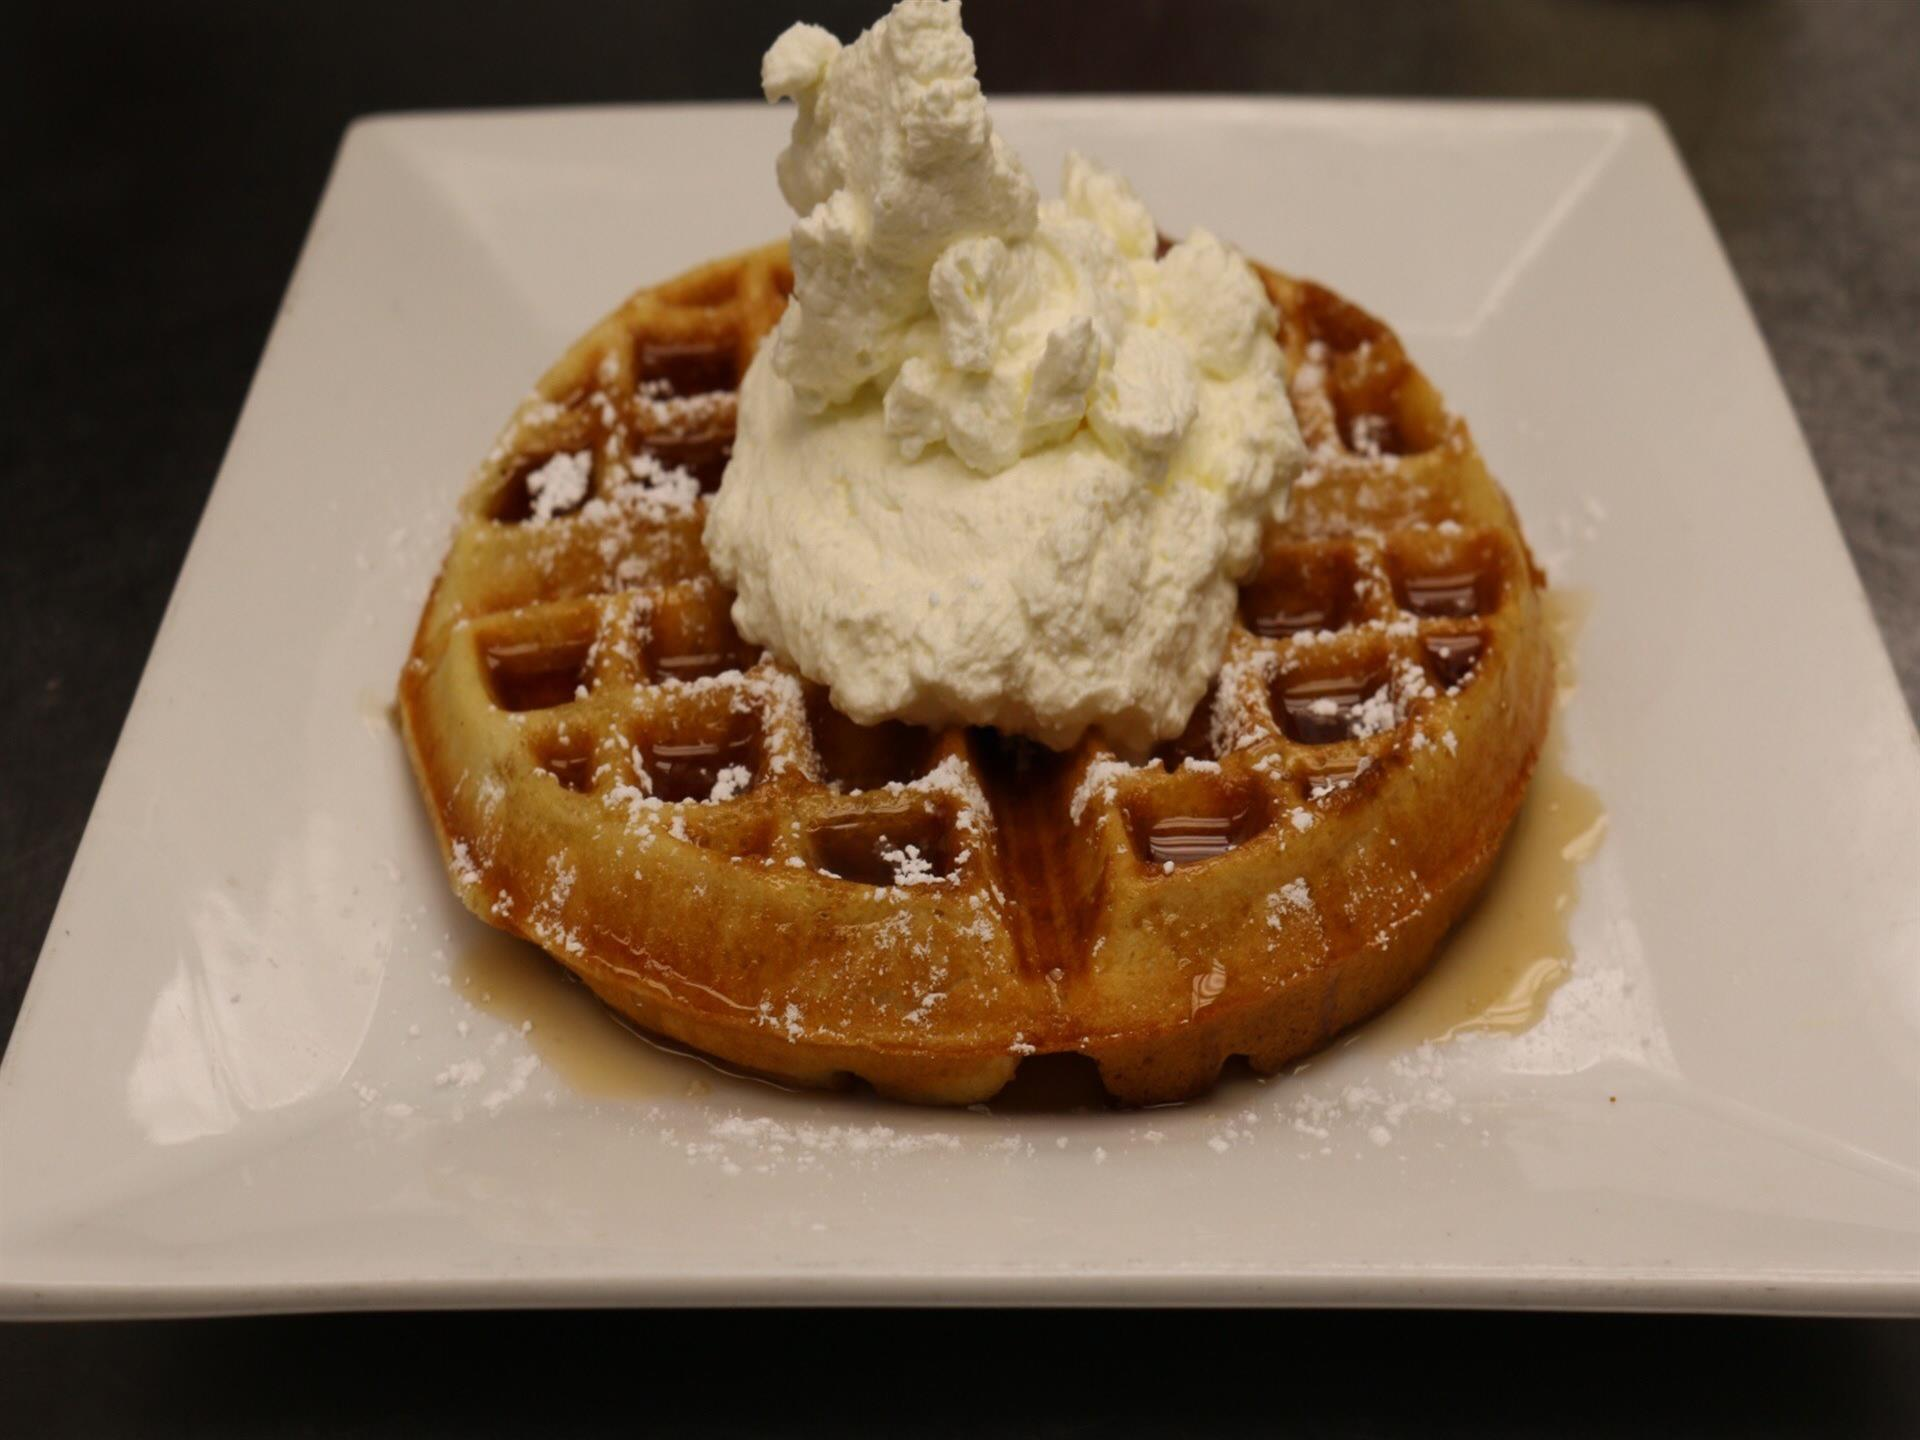 Belgian waffle topped with syrup, ice cream and whipped cream